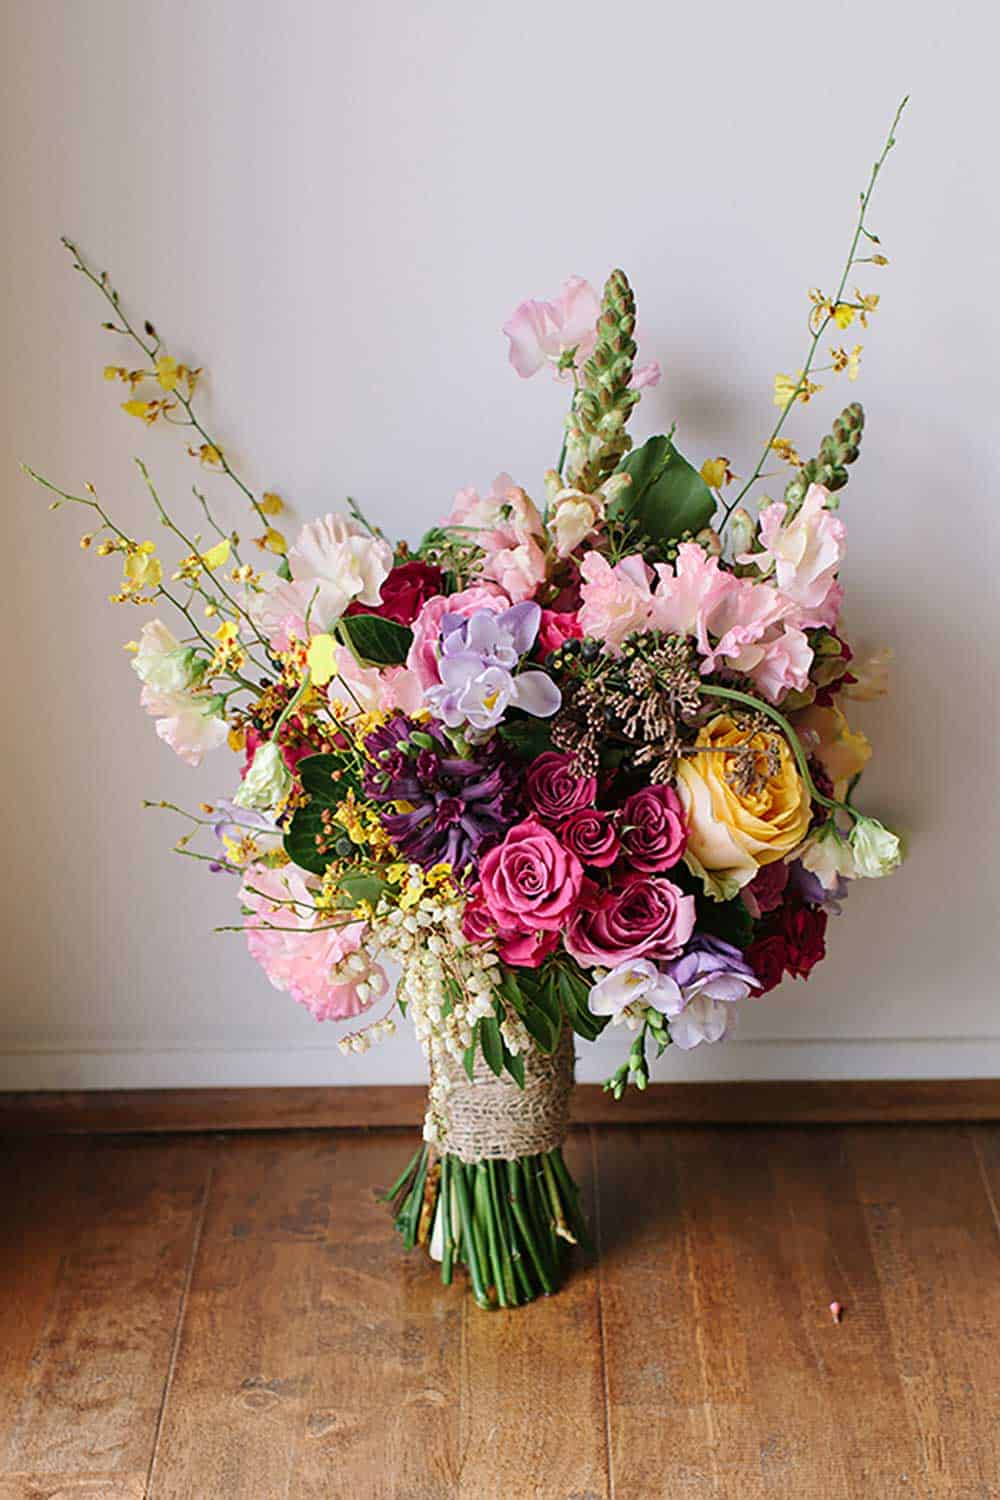 Gorgeous floral bouquet with pink, purple, yellow and green tones.